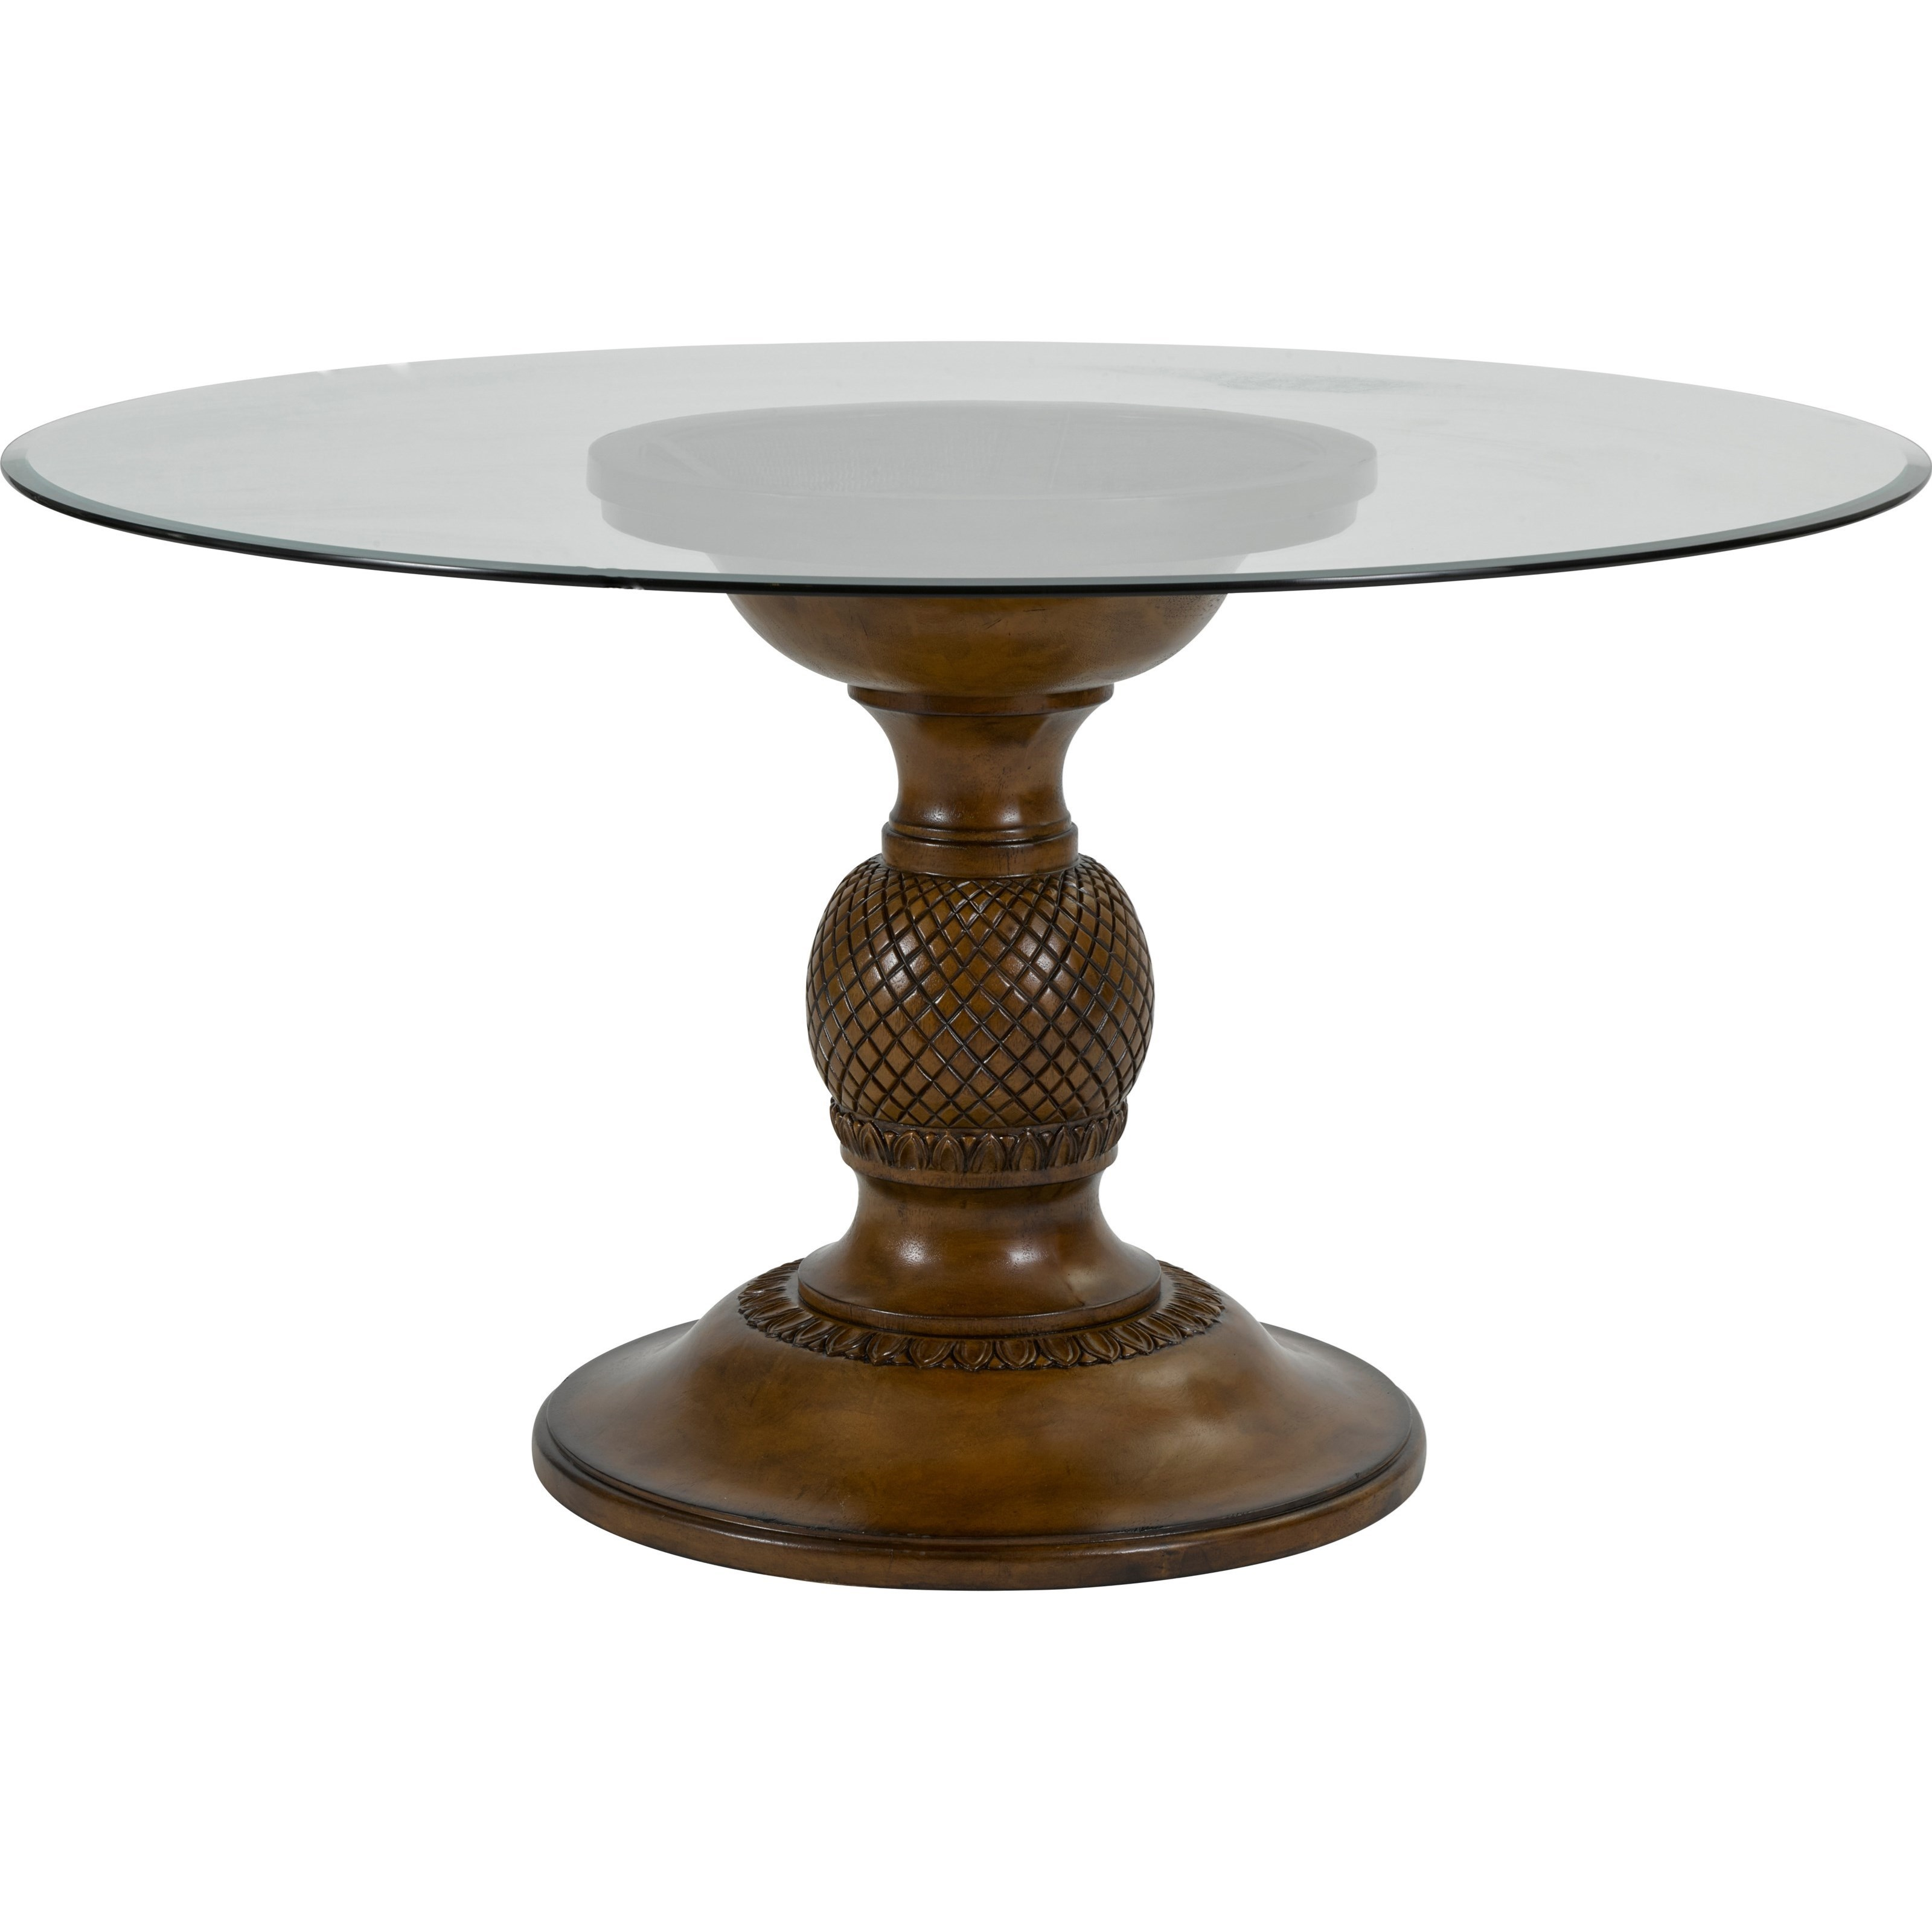 Broyhill Furniture Amalie Bay Round Dining Table - Item Number: 4548-551+531